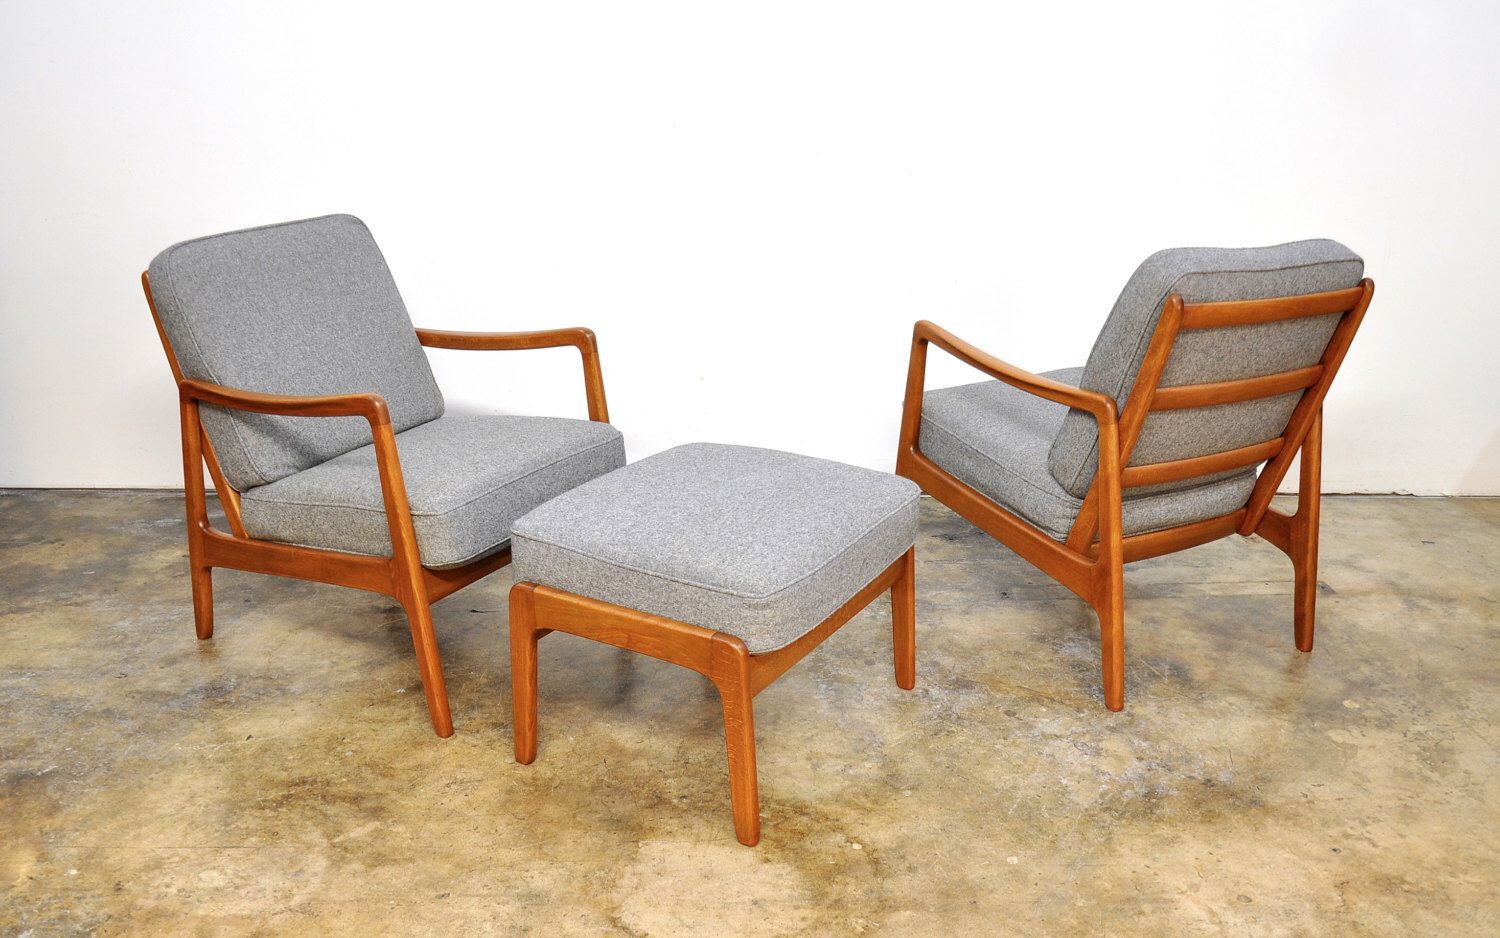 pair of ole wanscher danish modern lounge chairs and ottoman by